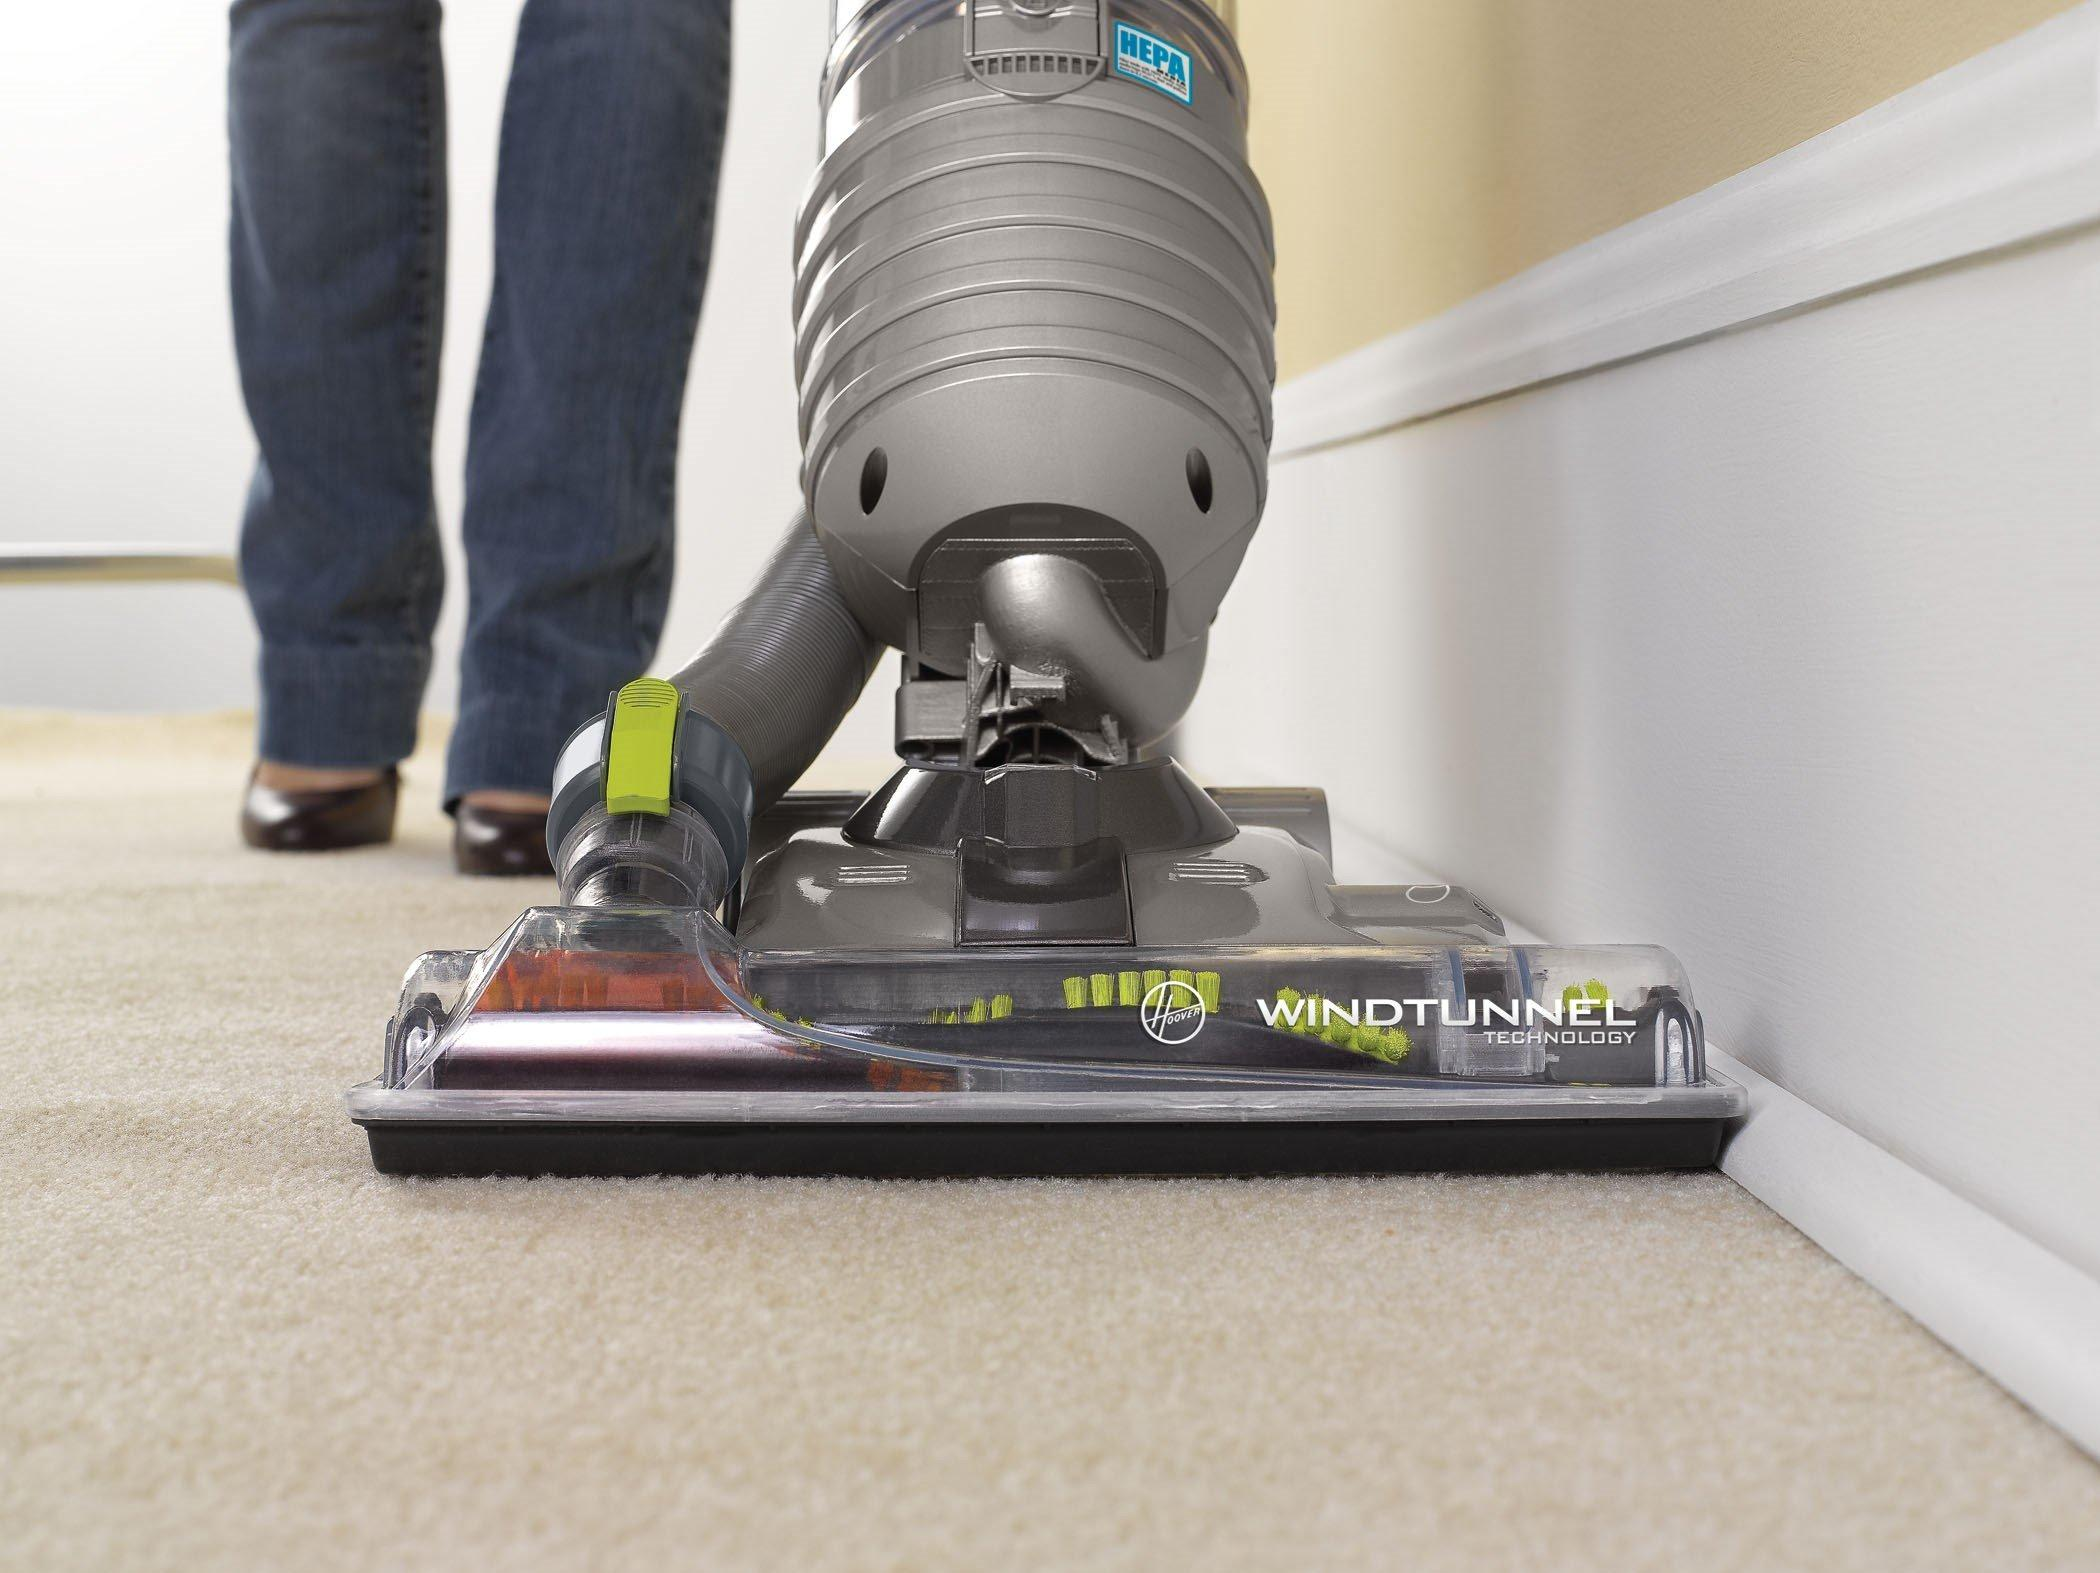 WindTunnel Air Whole Home Upright Vacuum3